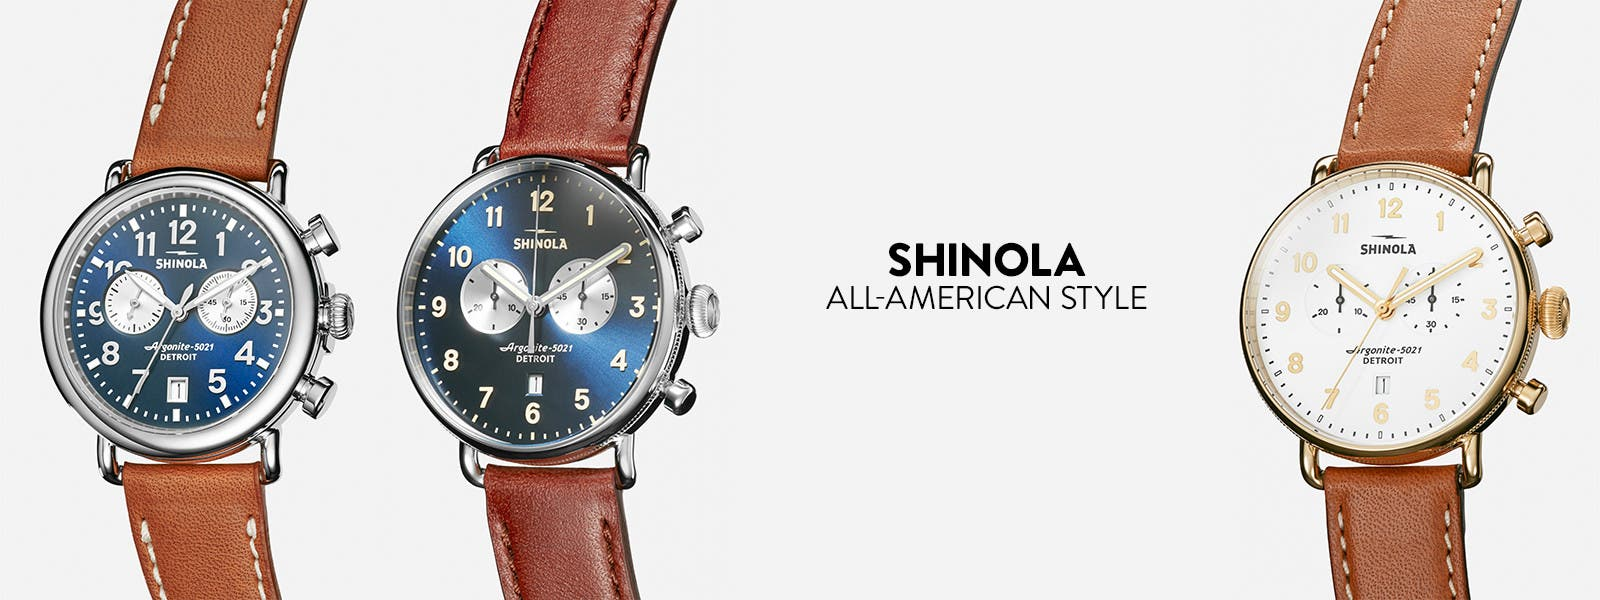 Shinola leather-strap watches.